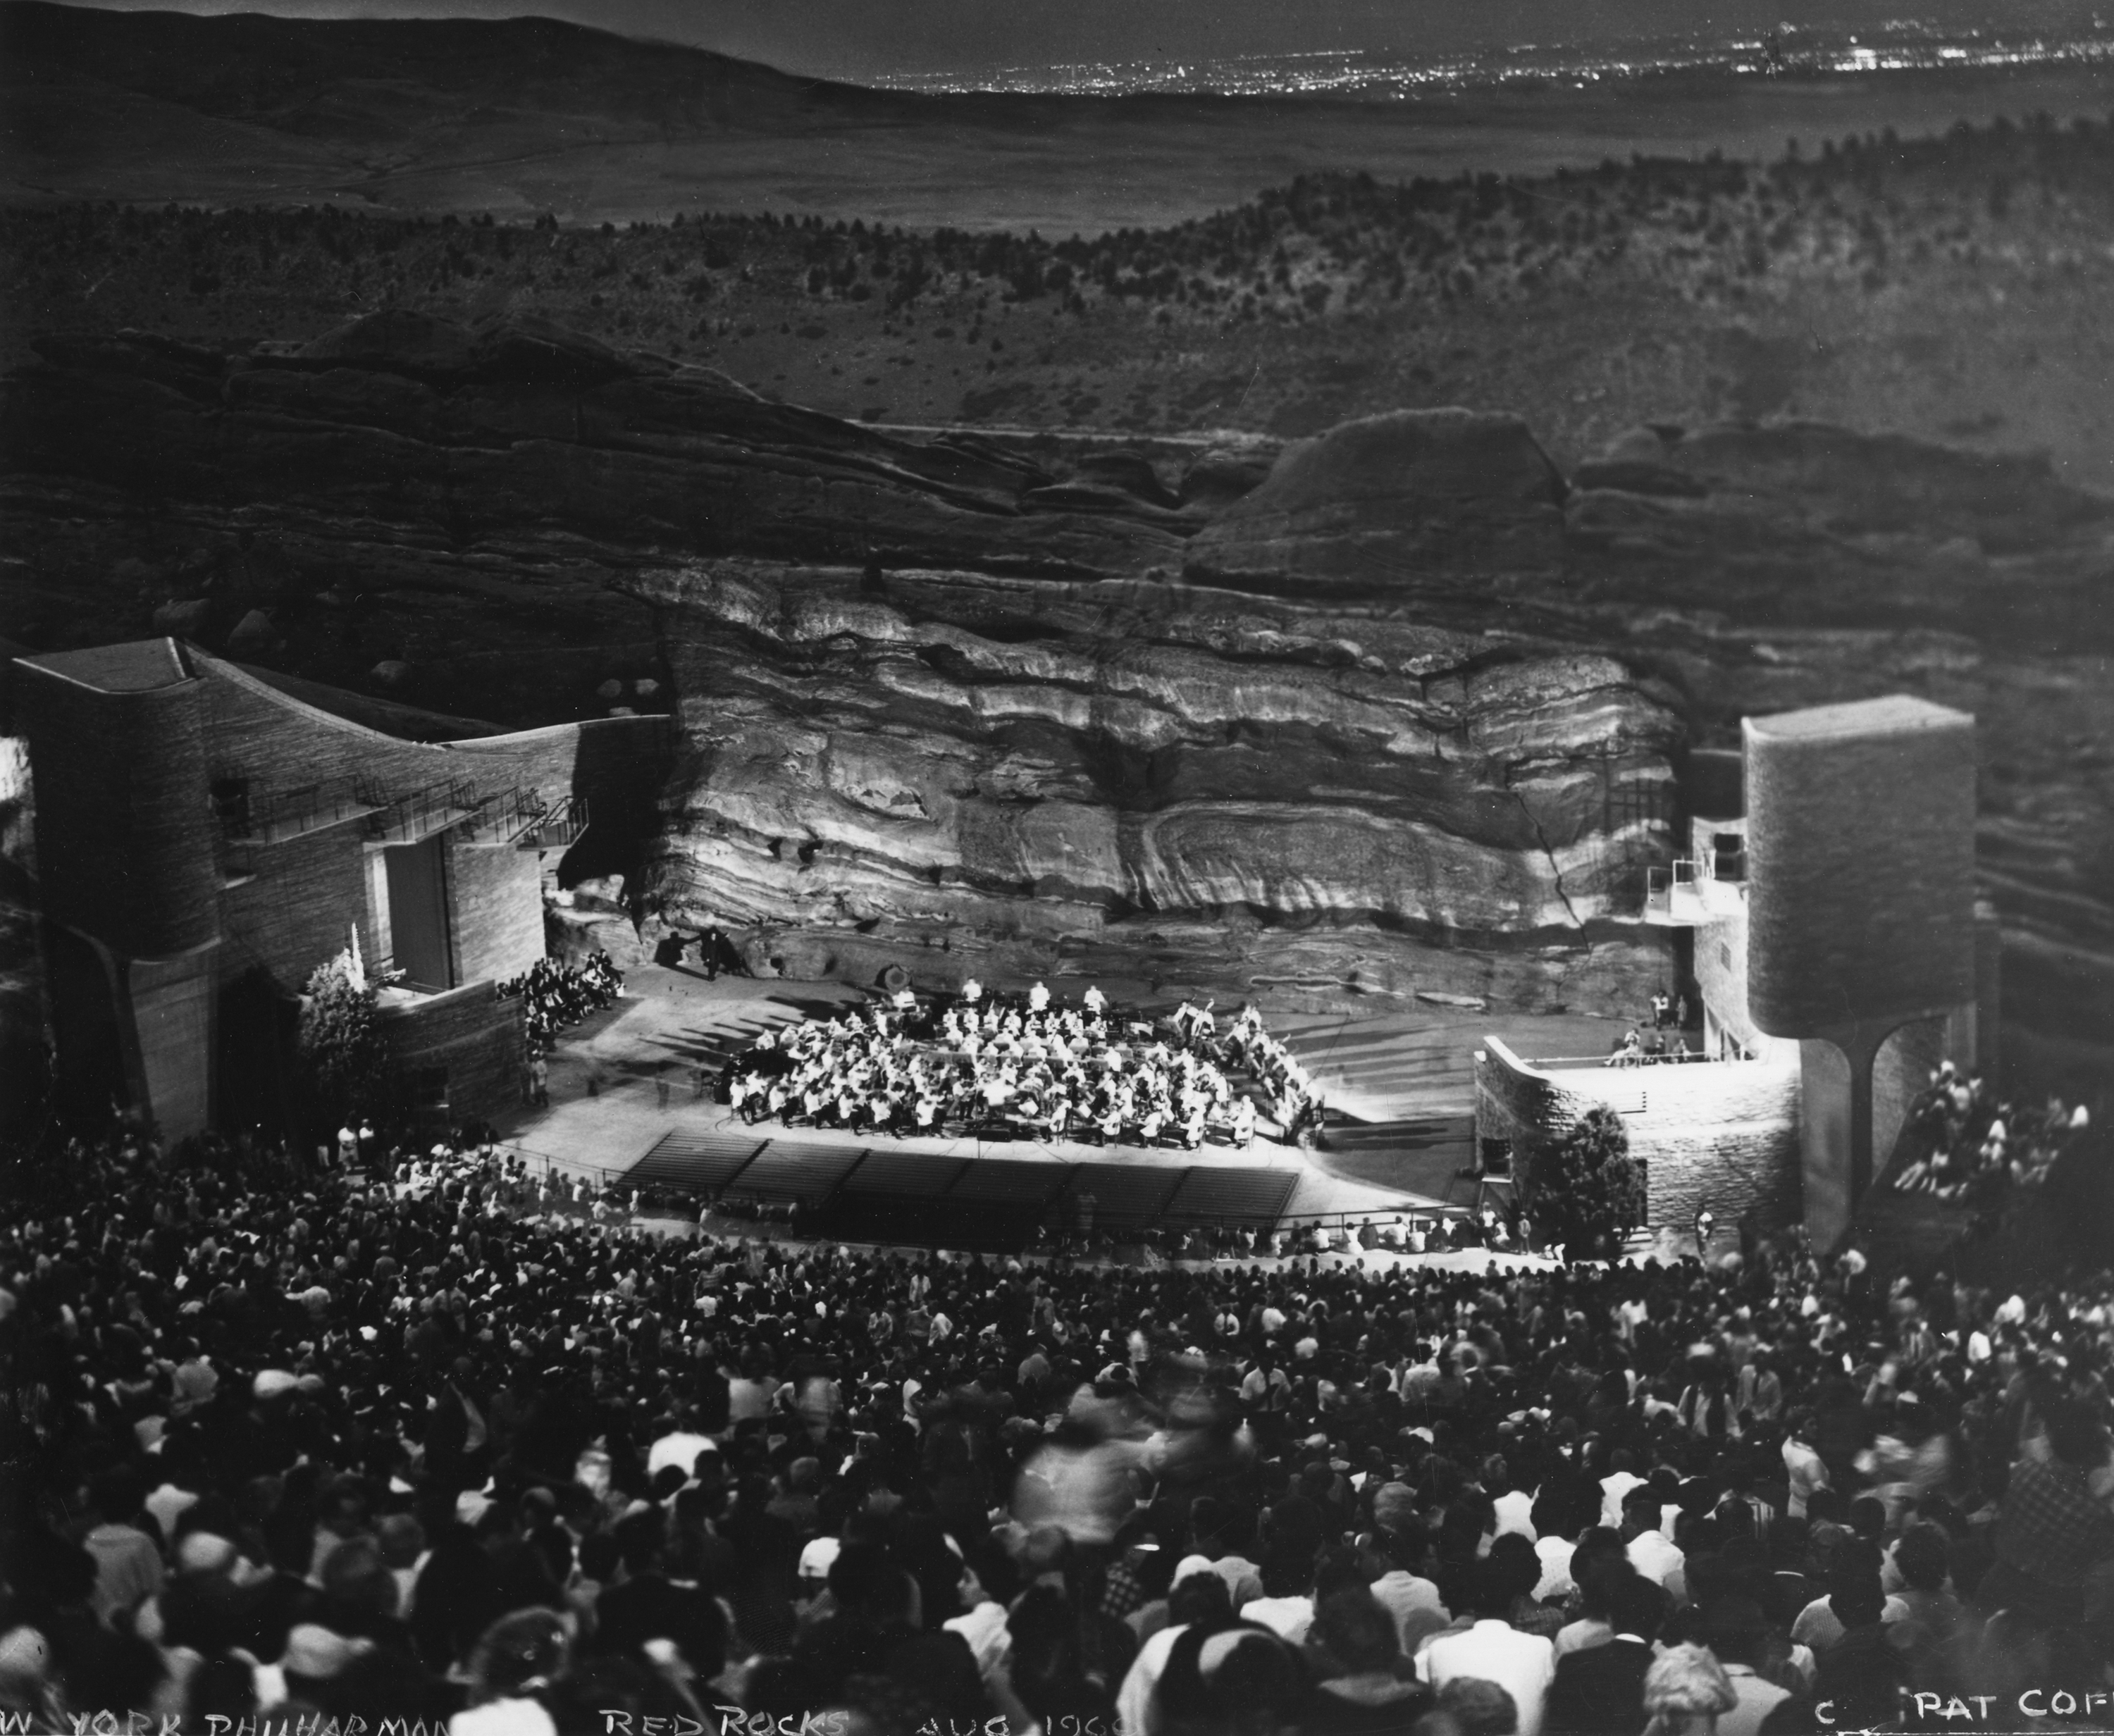 Photo of Red Rocks Amphitheatre hosting its inaugural concert in the summer of 1960. Here, the New York Philharmonic performs on the stage below, to a packed crowd. Behind the stage stand iconic red rock walls, and the city lights of Denver are visible on the horizon.